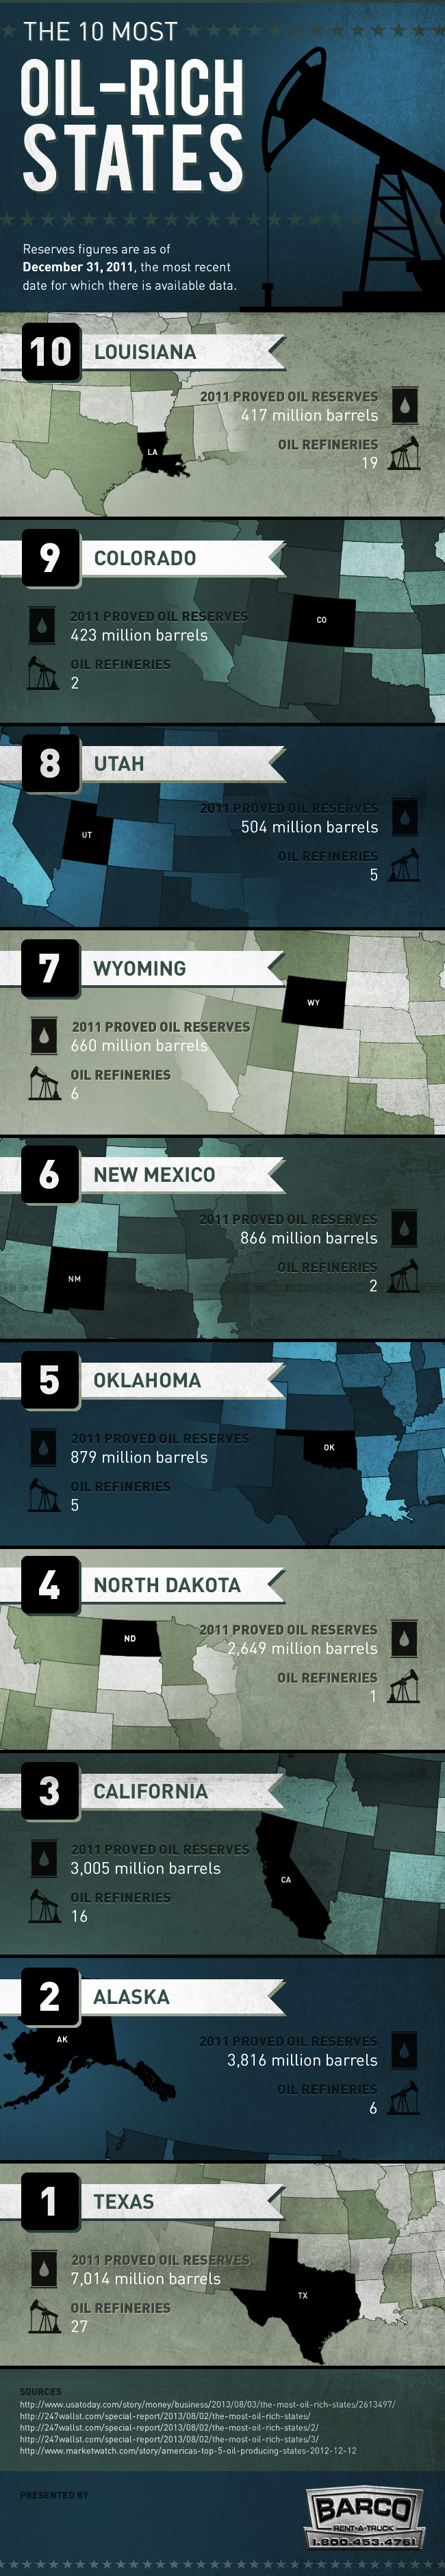 The 10 Most Oilrich States